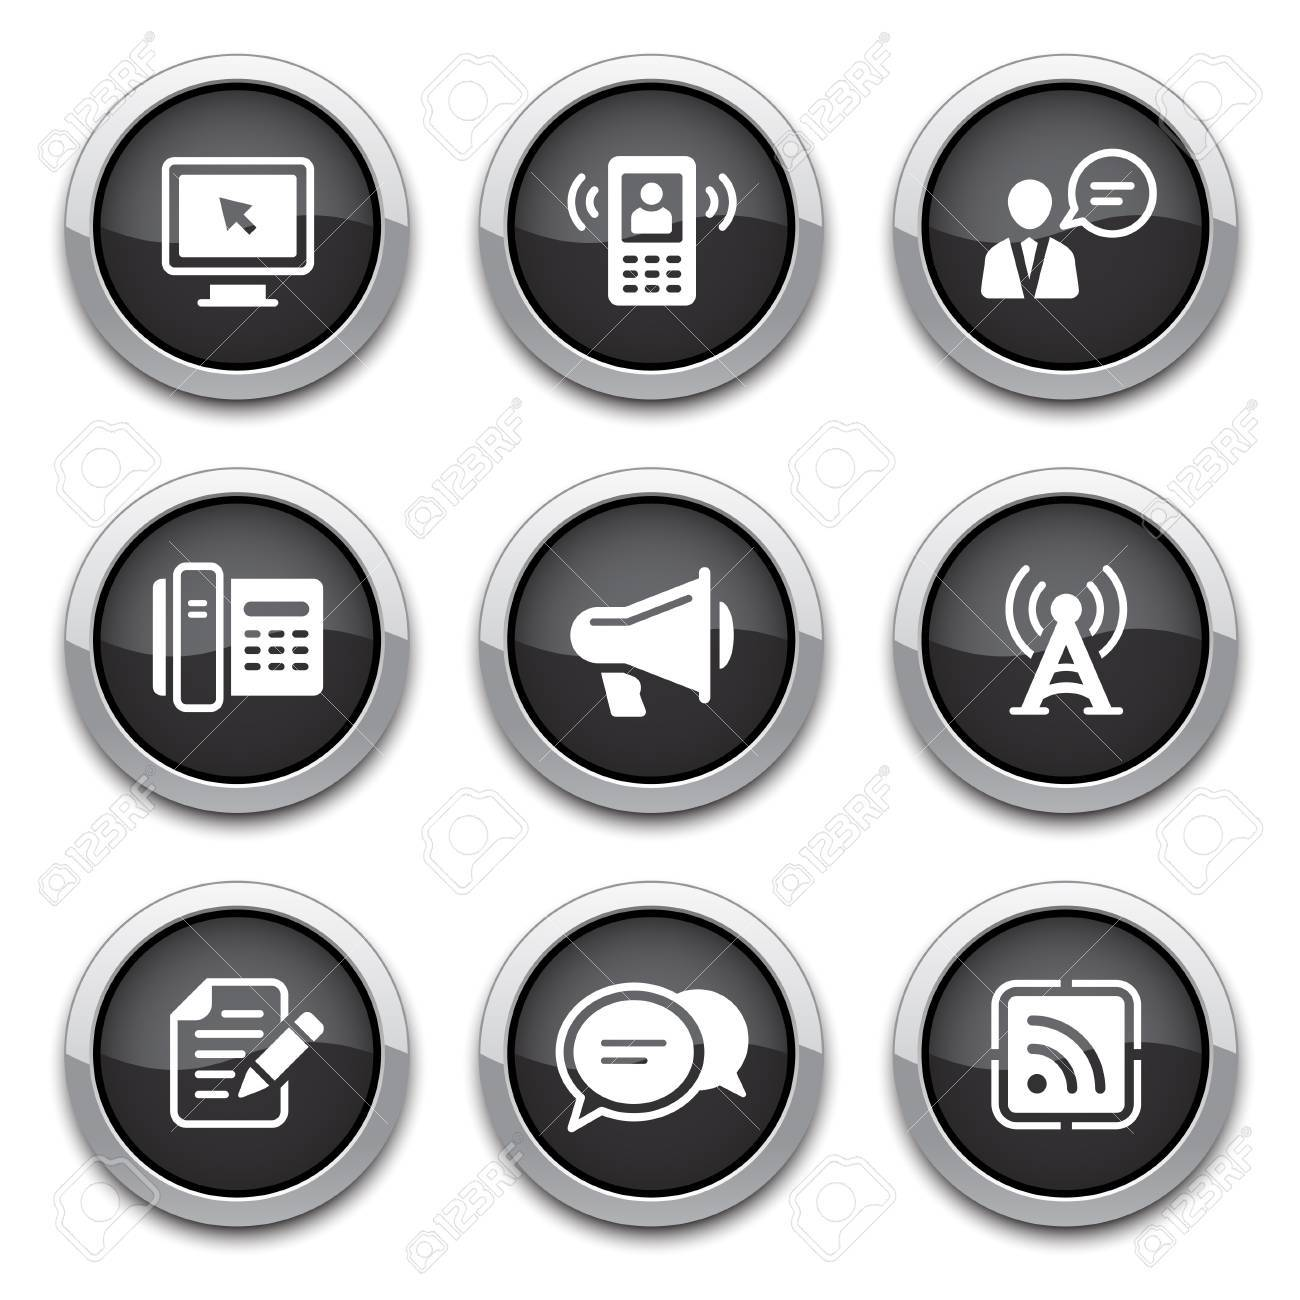 black communication buttons Stock Vector - 13763691